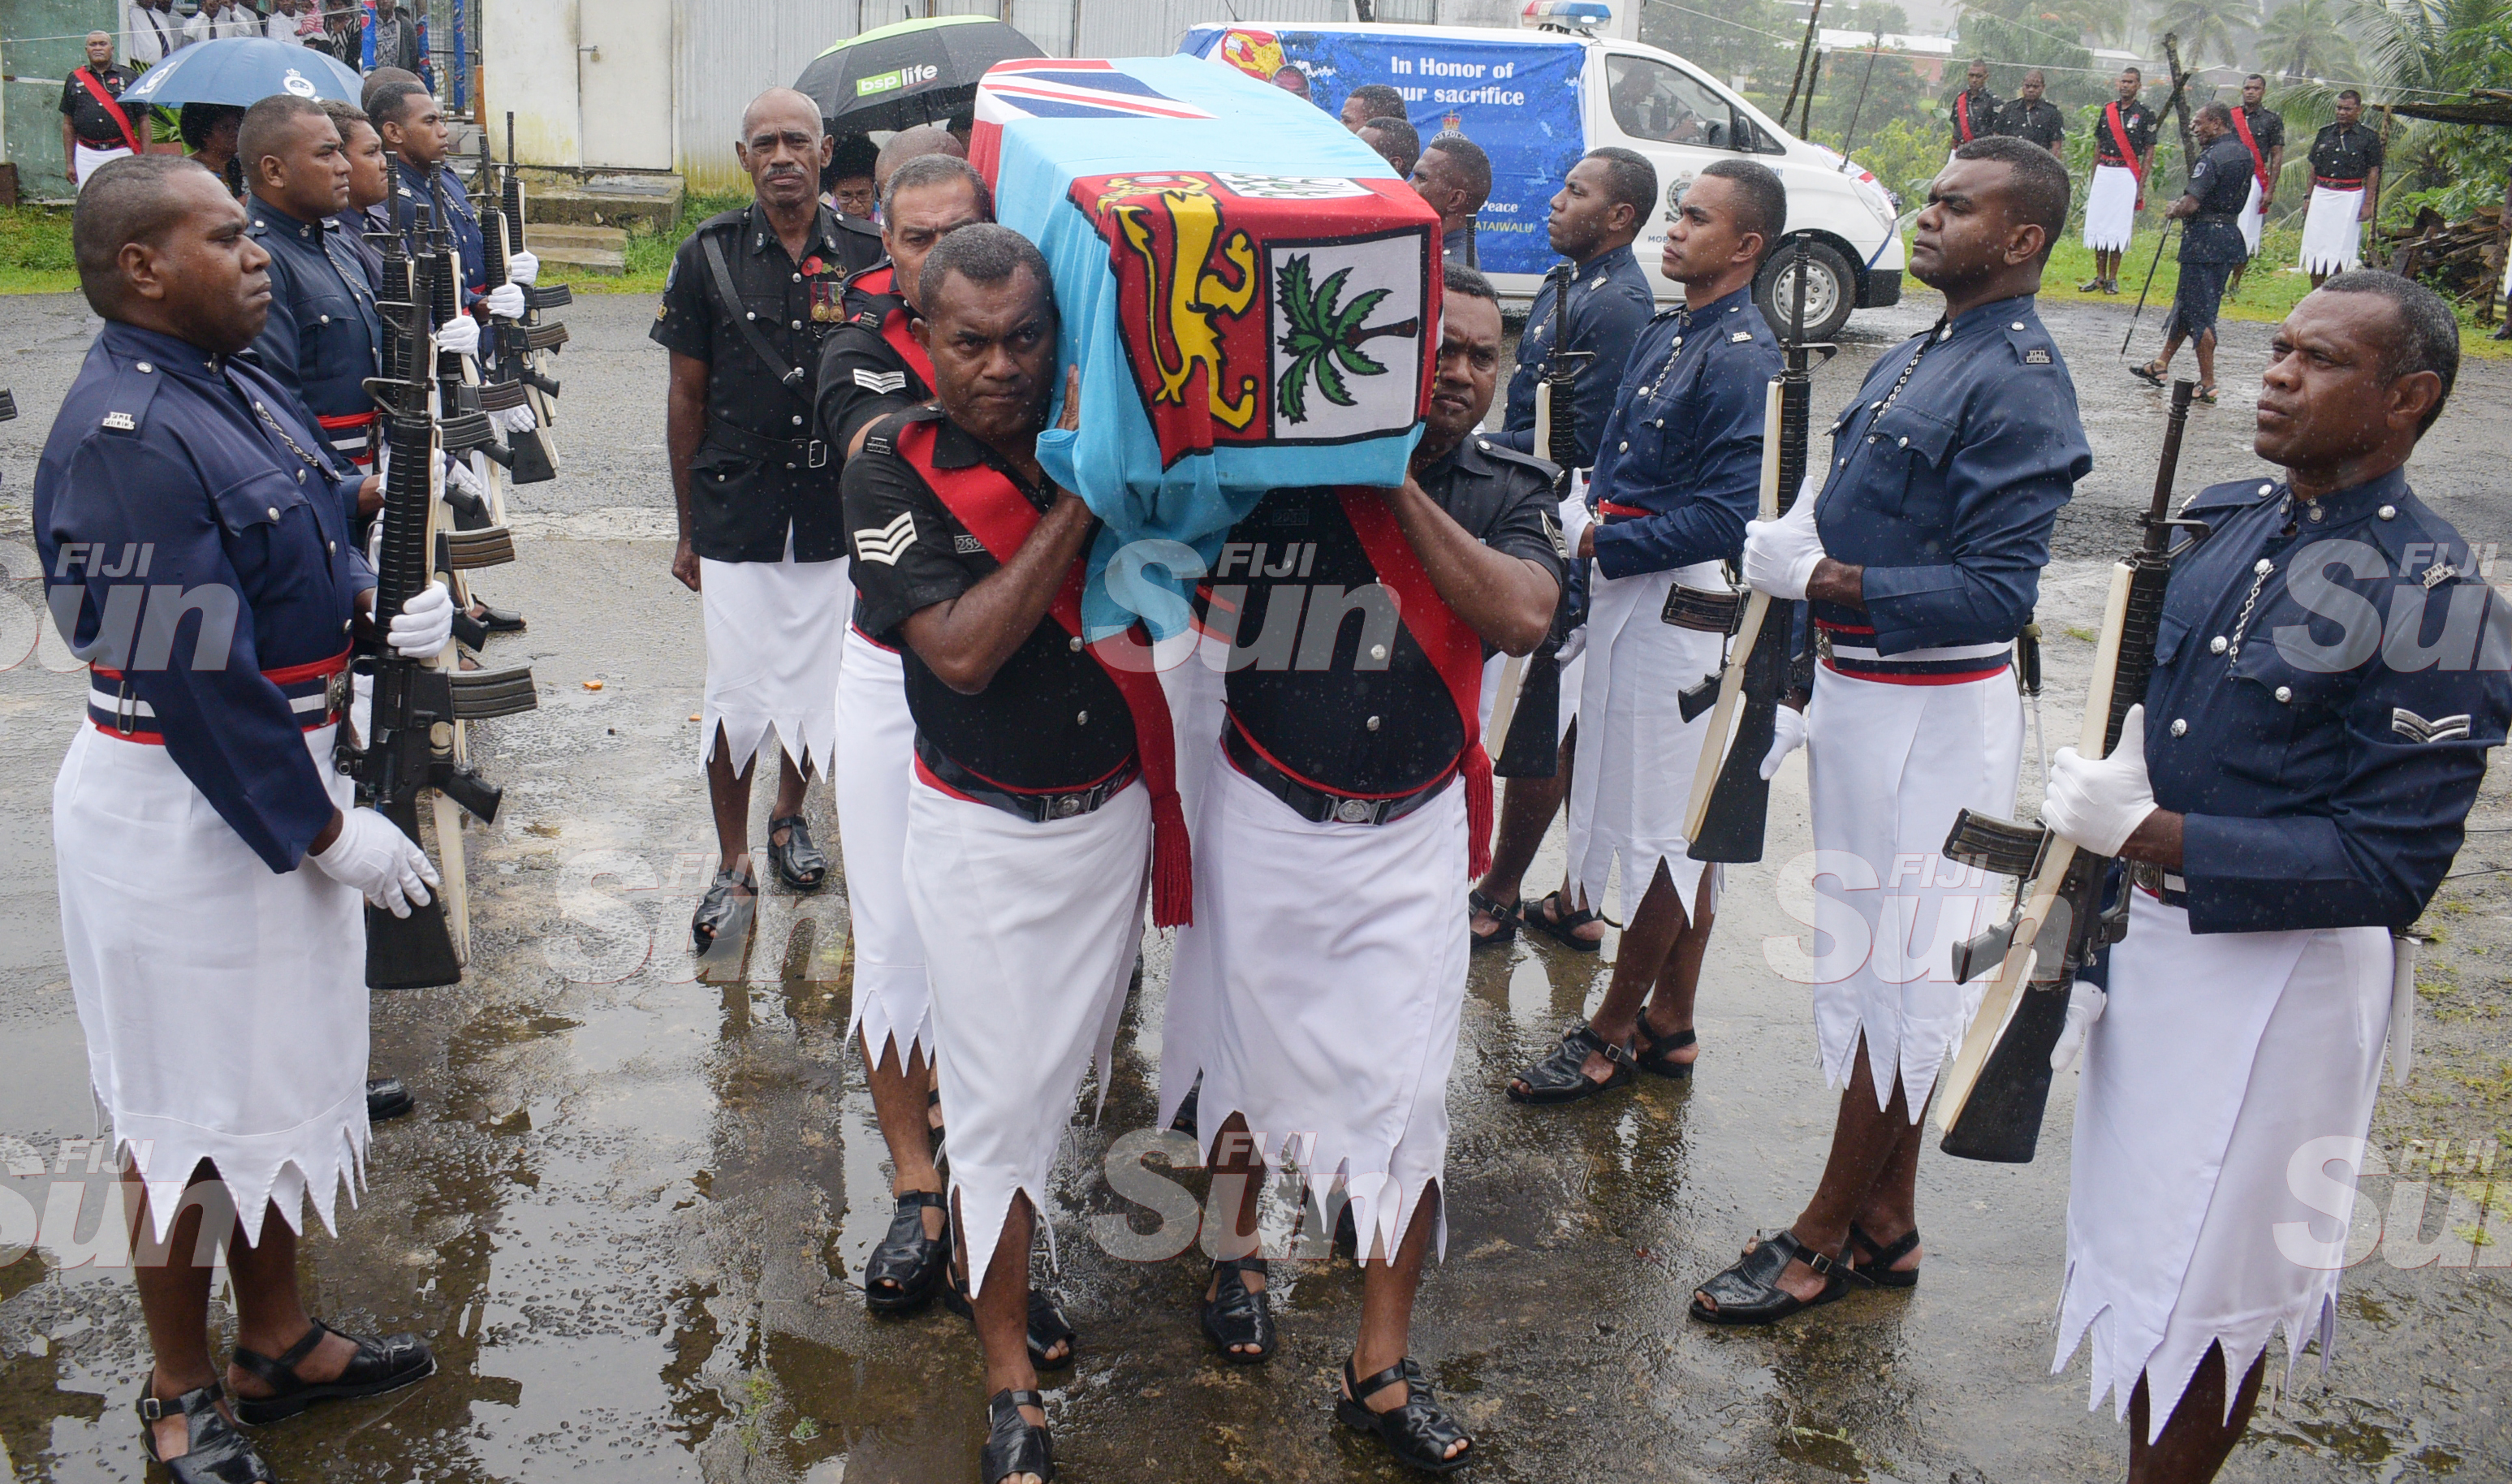 Police farewell Constable Siuta Niumataiwalu, who was killed in the line of duty at Evergreen AOG Church in Nasinu on October 26, 2019. Photo: Ronald Kumar.